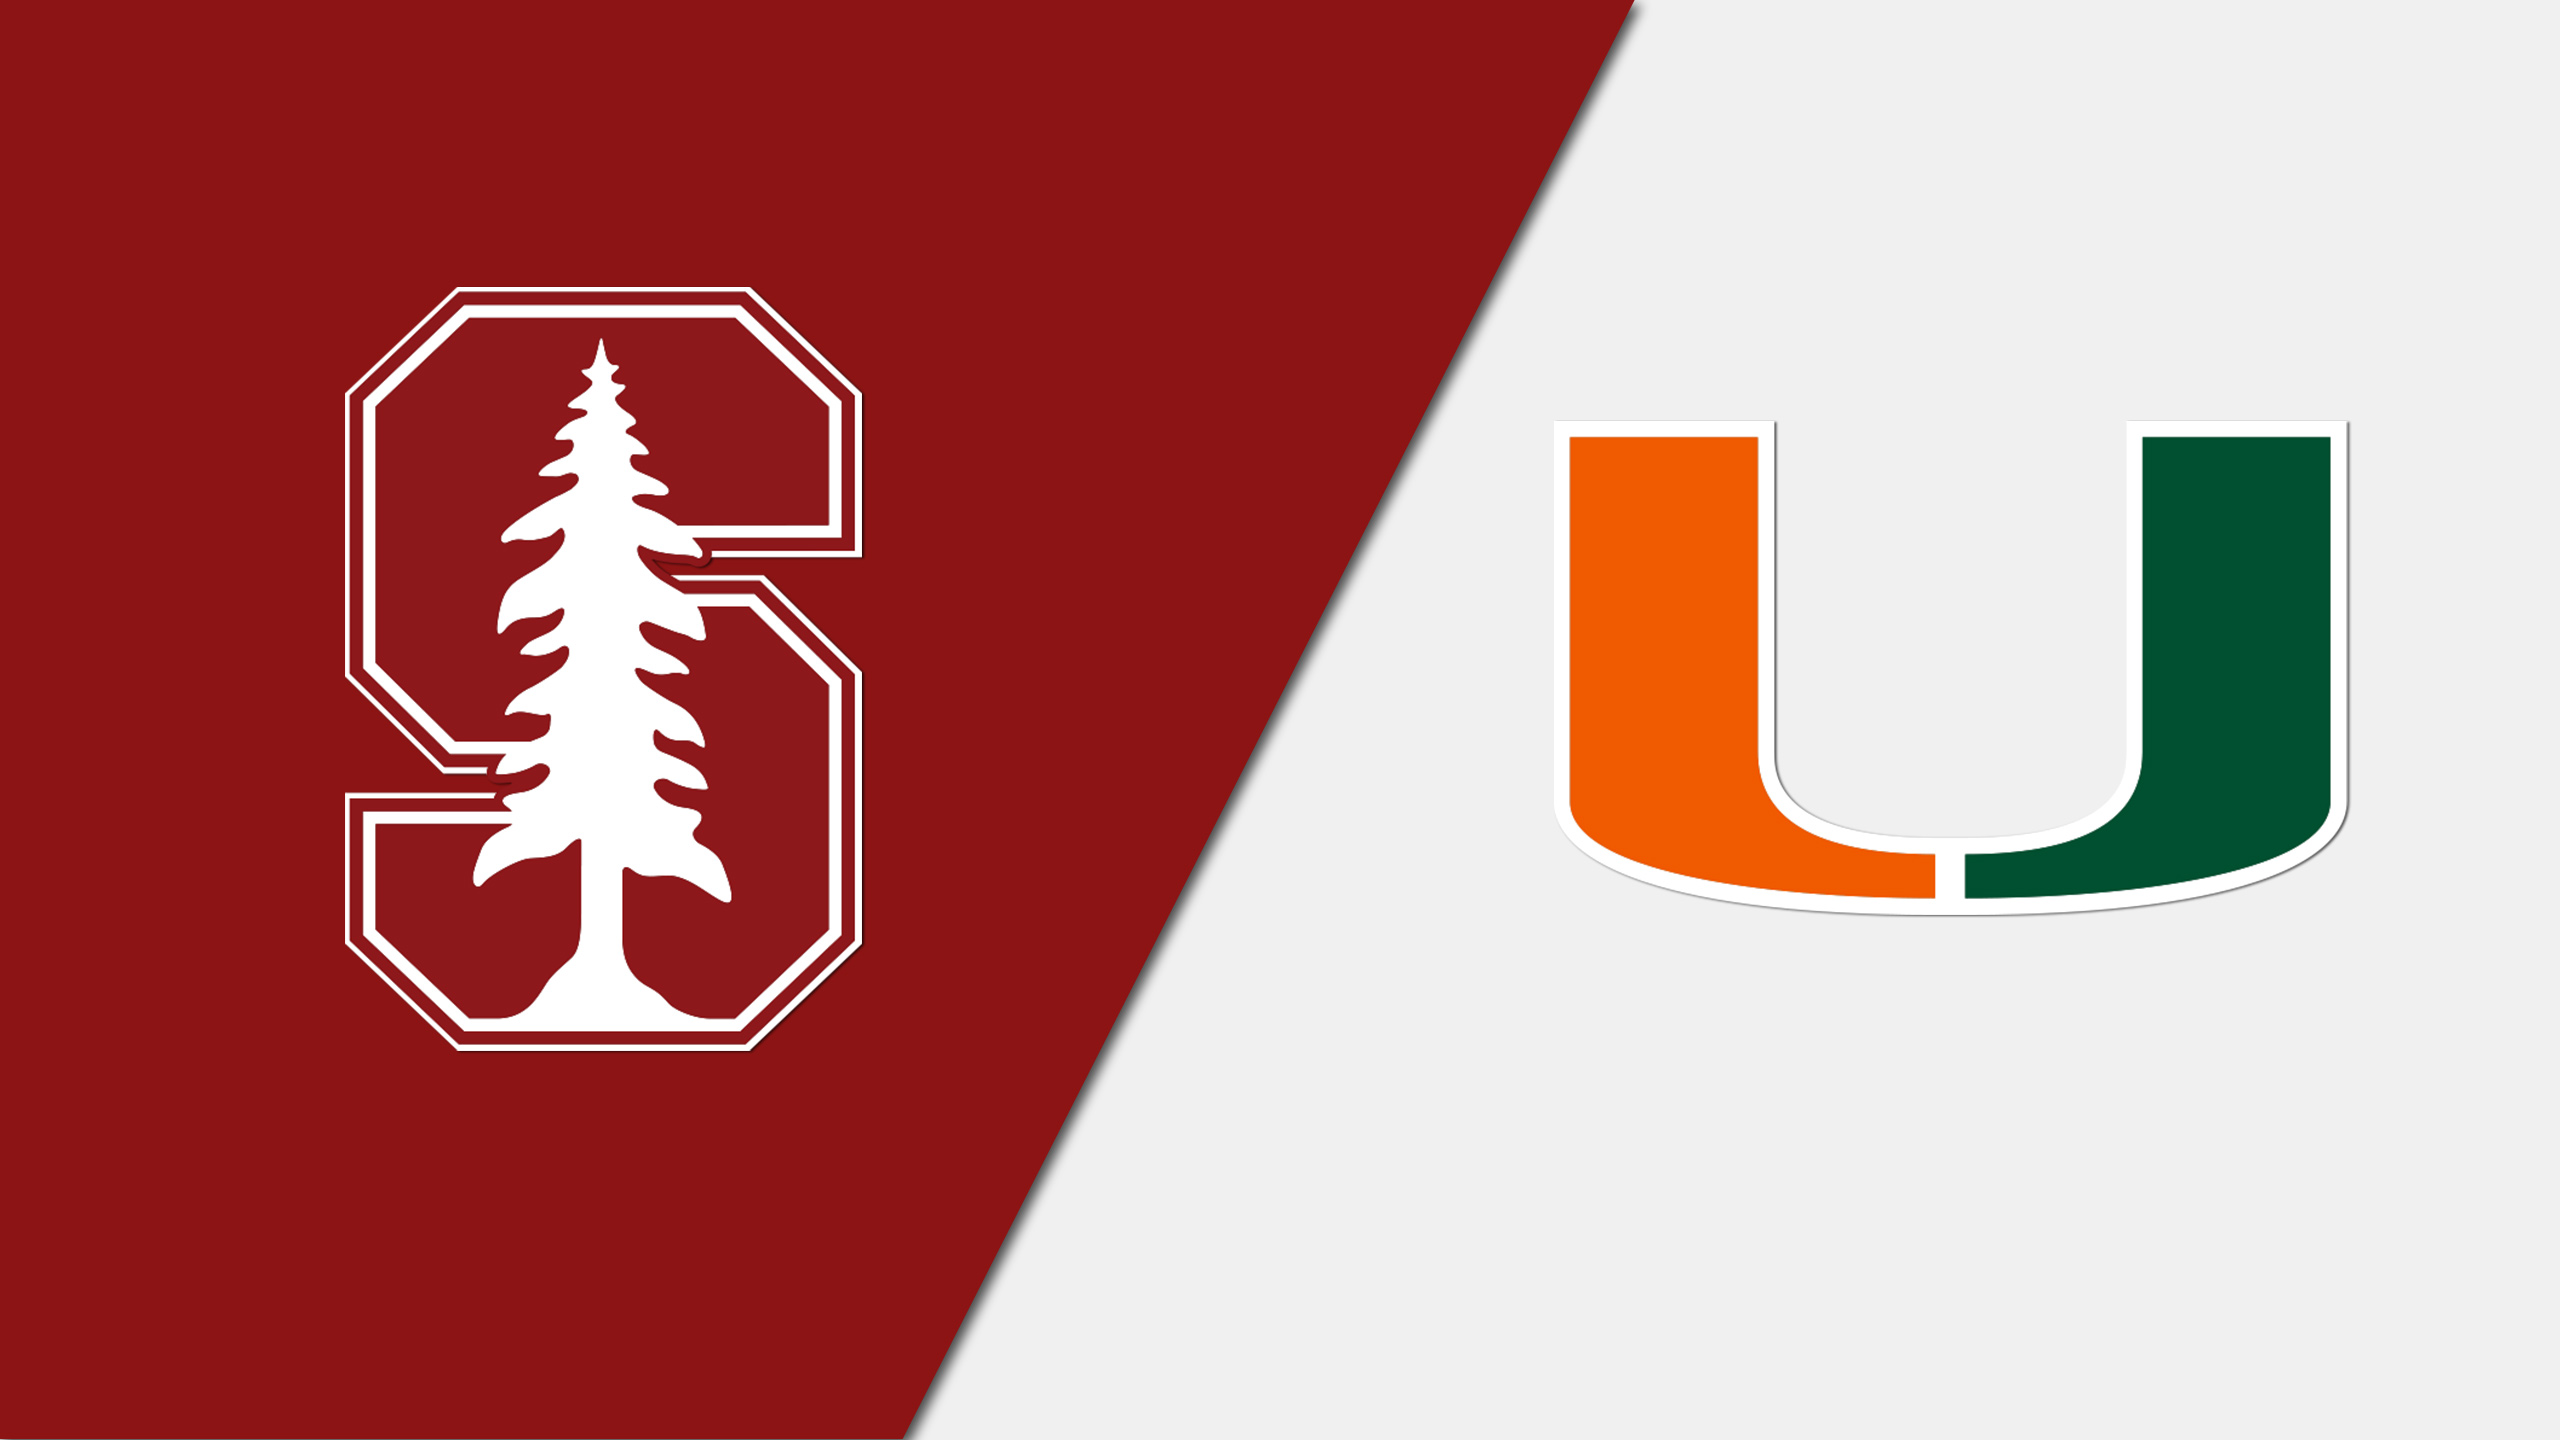 #2 Stanford vs. #2 Miami (FL) (Championship) (re-air)